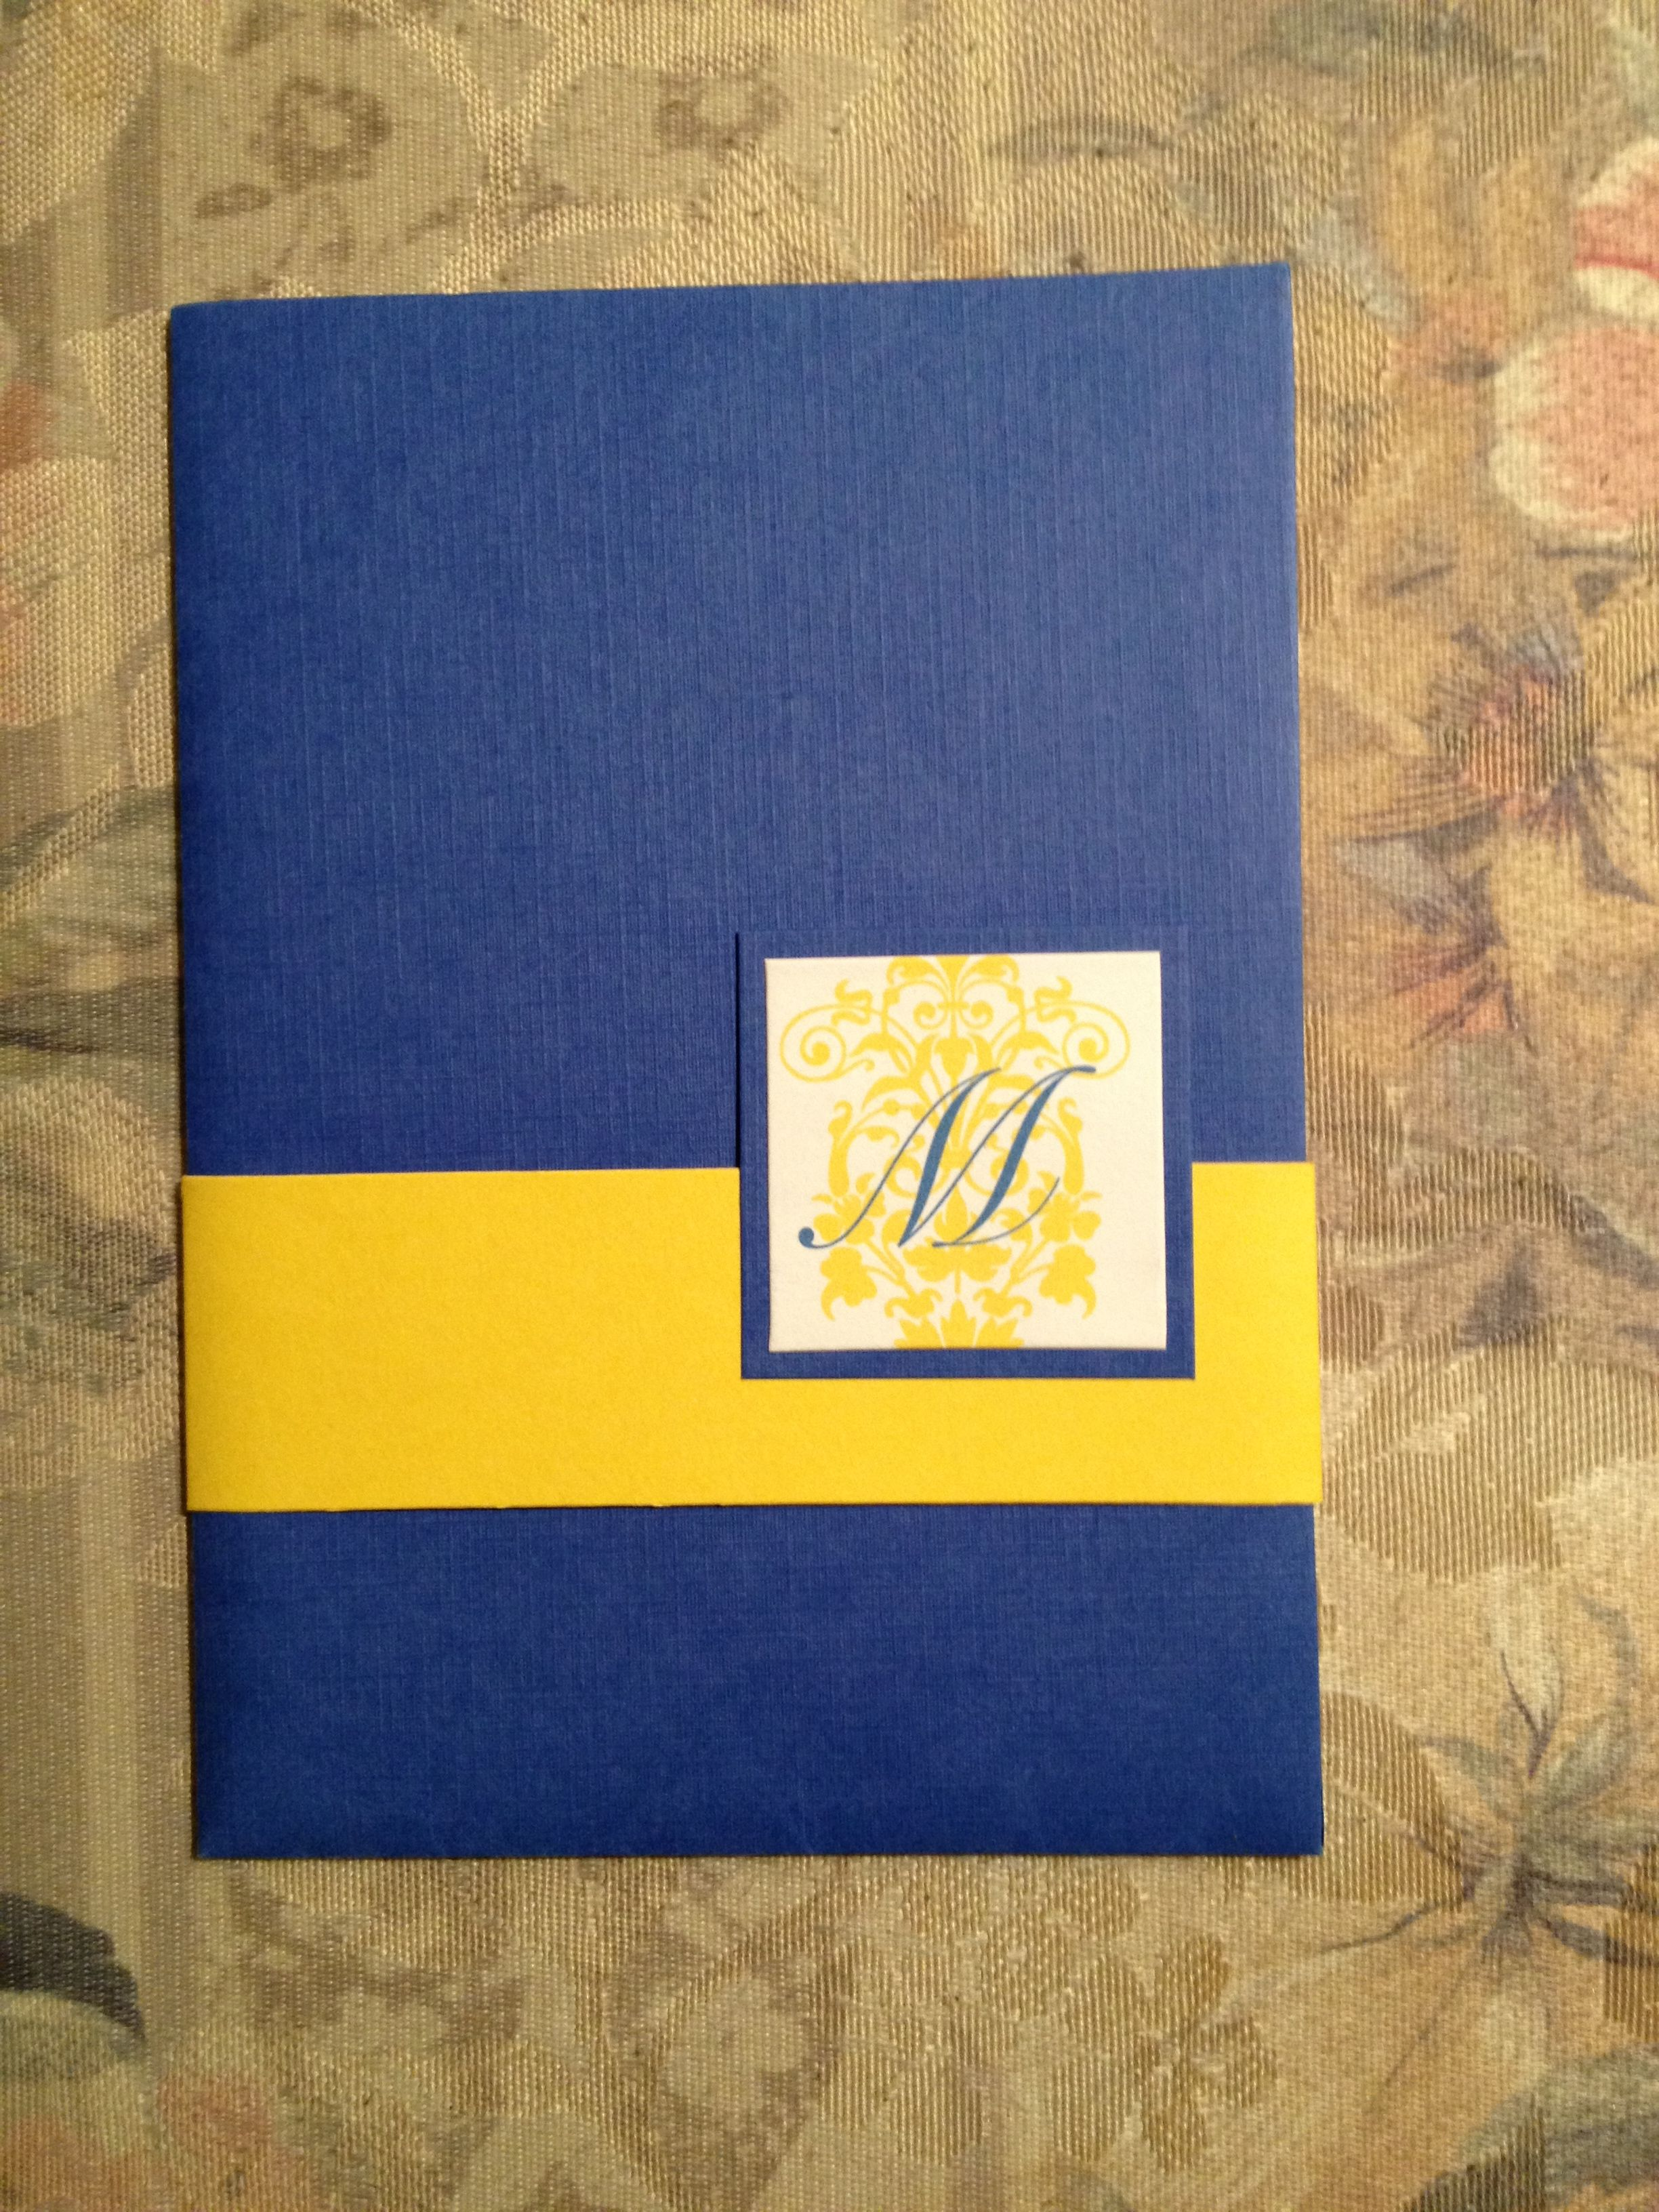 and the front of the blue and gold damask invitations ensemble.